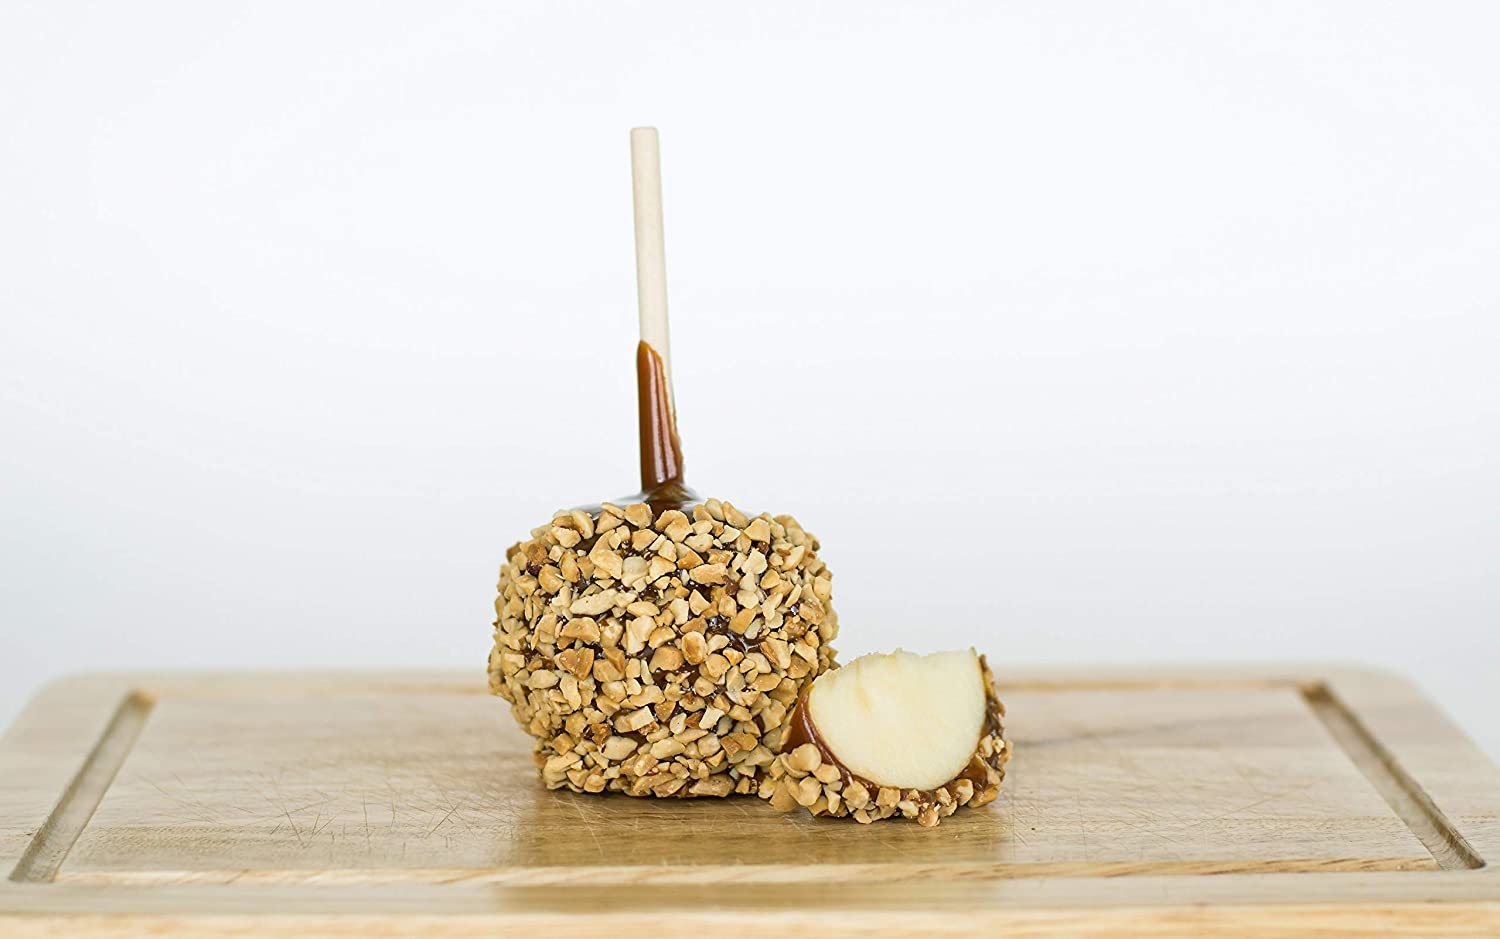 12 Individually Packaged Classic Caramel Apples with Peanuts